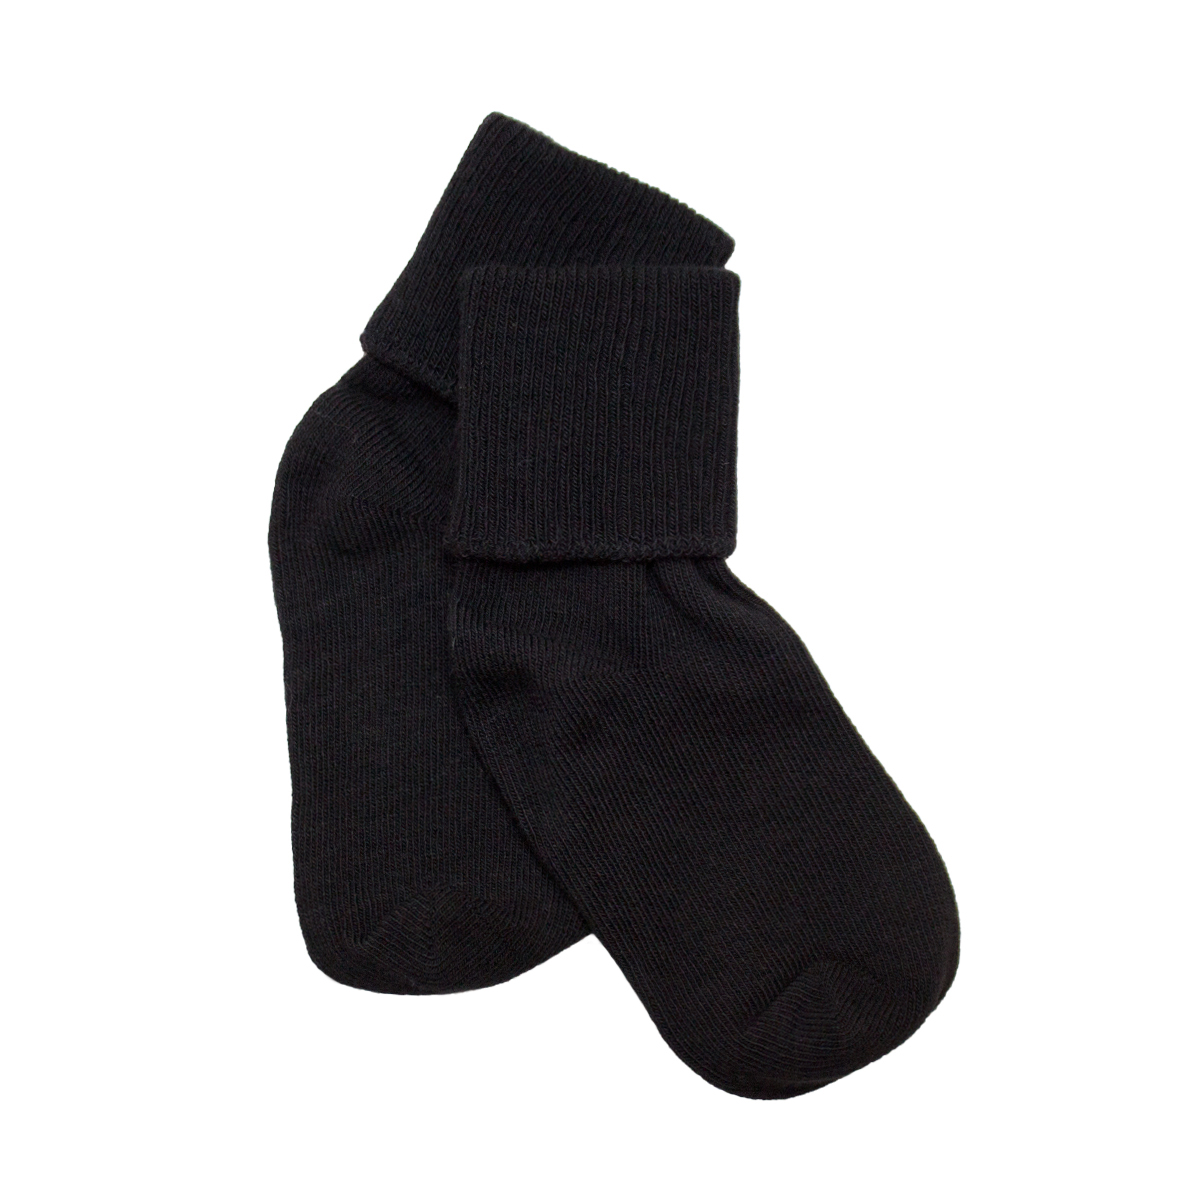 Jefferies organic cotton kids socks